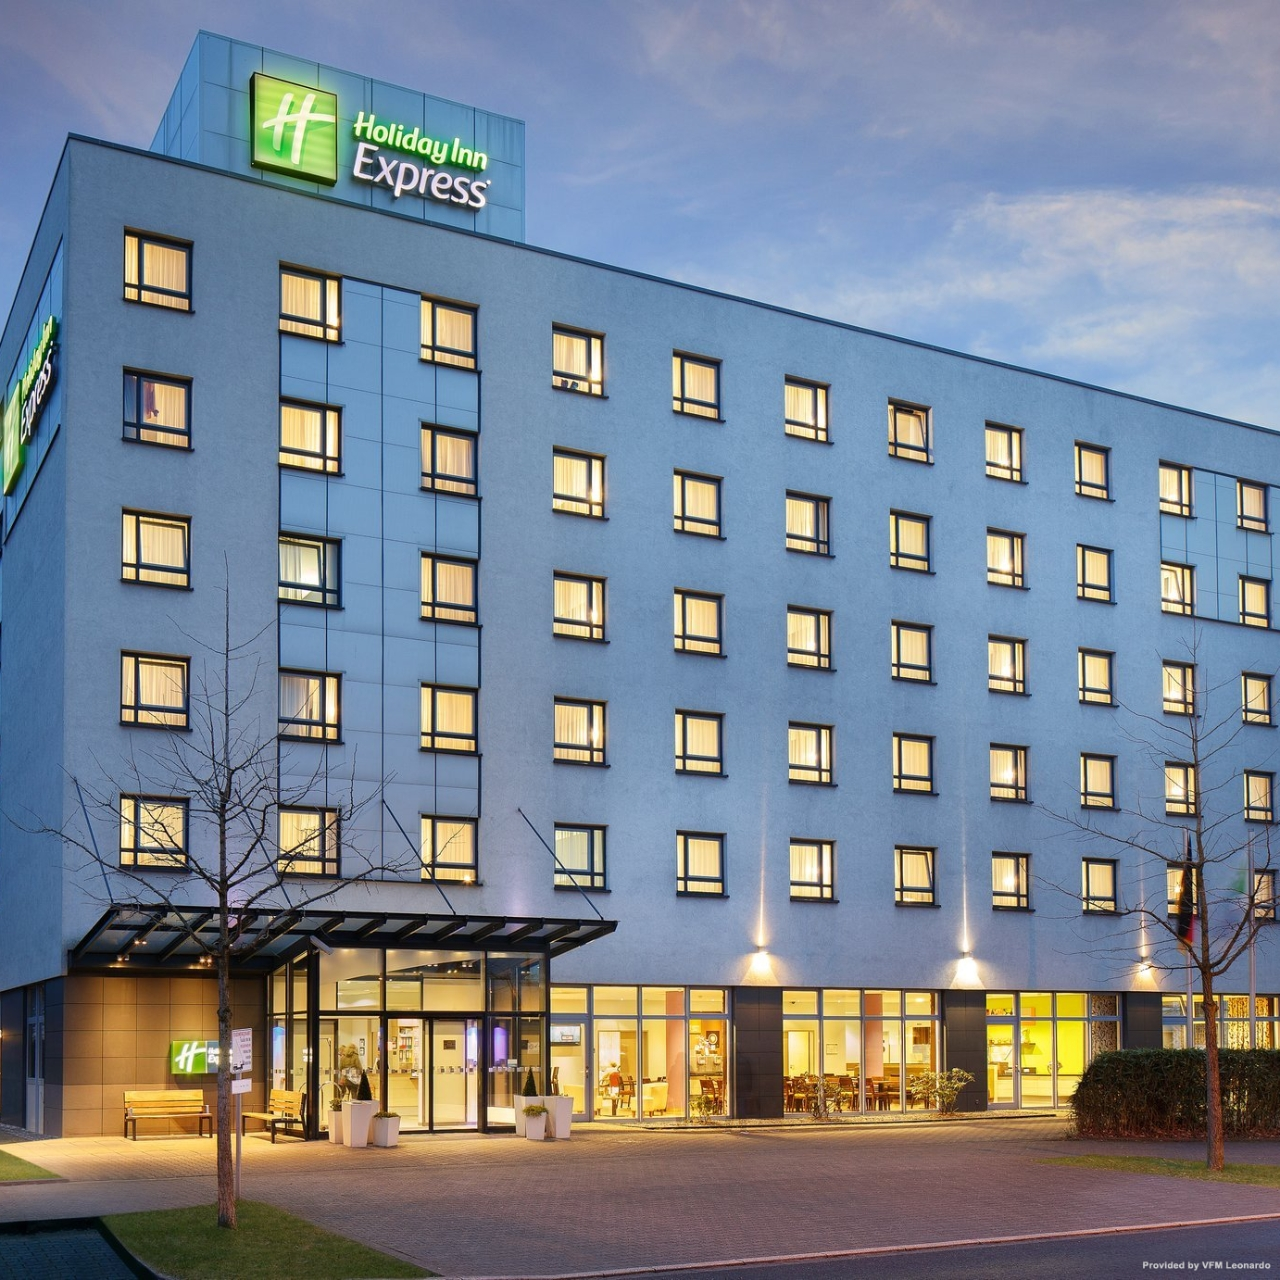 Salm Karlsruhe Holiday Inn Express Dusseldorf - City North - 3 Hrs Star Hotel In Düsseldorf (north Rhine-westphalia)